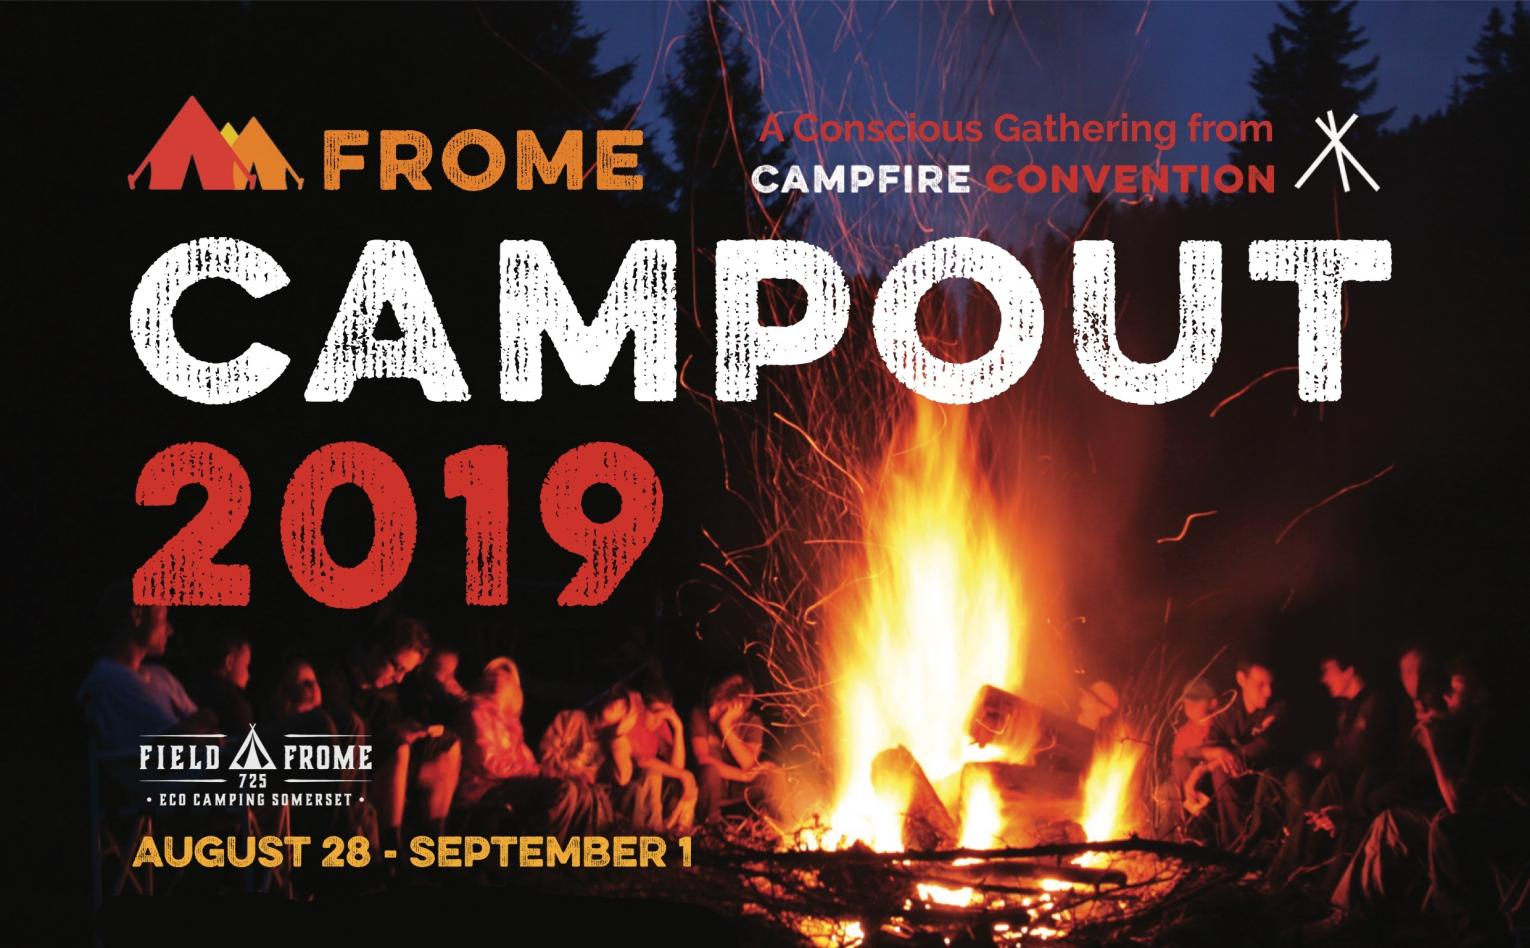 Campfire Convention 2019 Frome 28 August to 1 September 2019